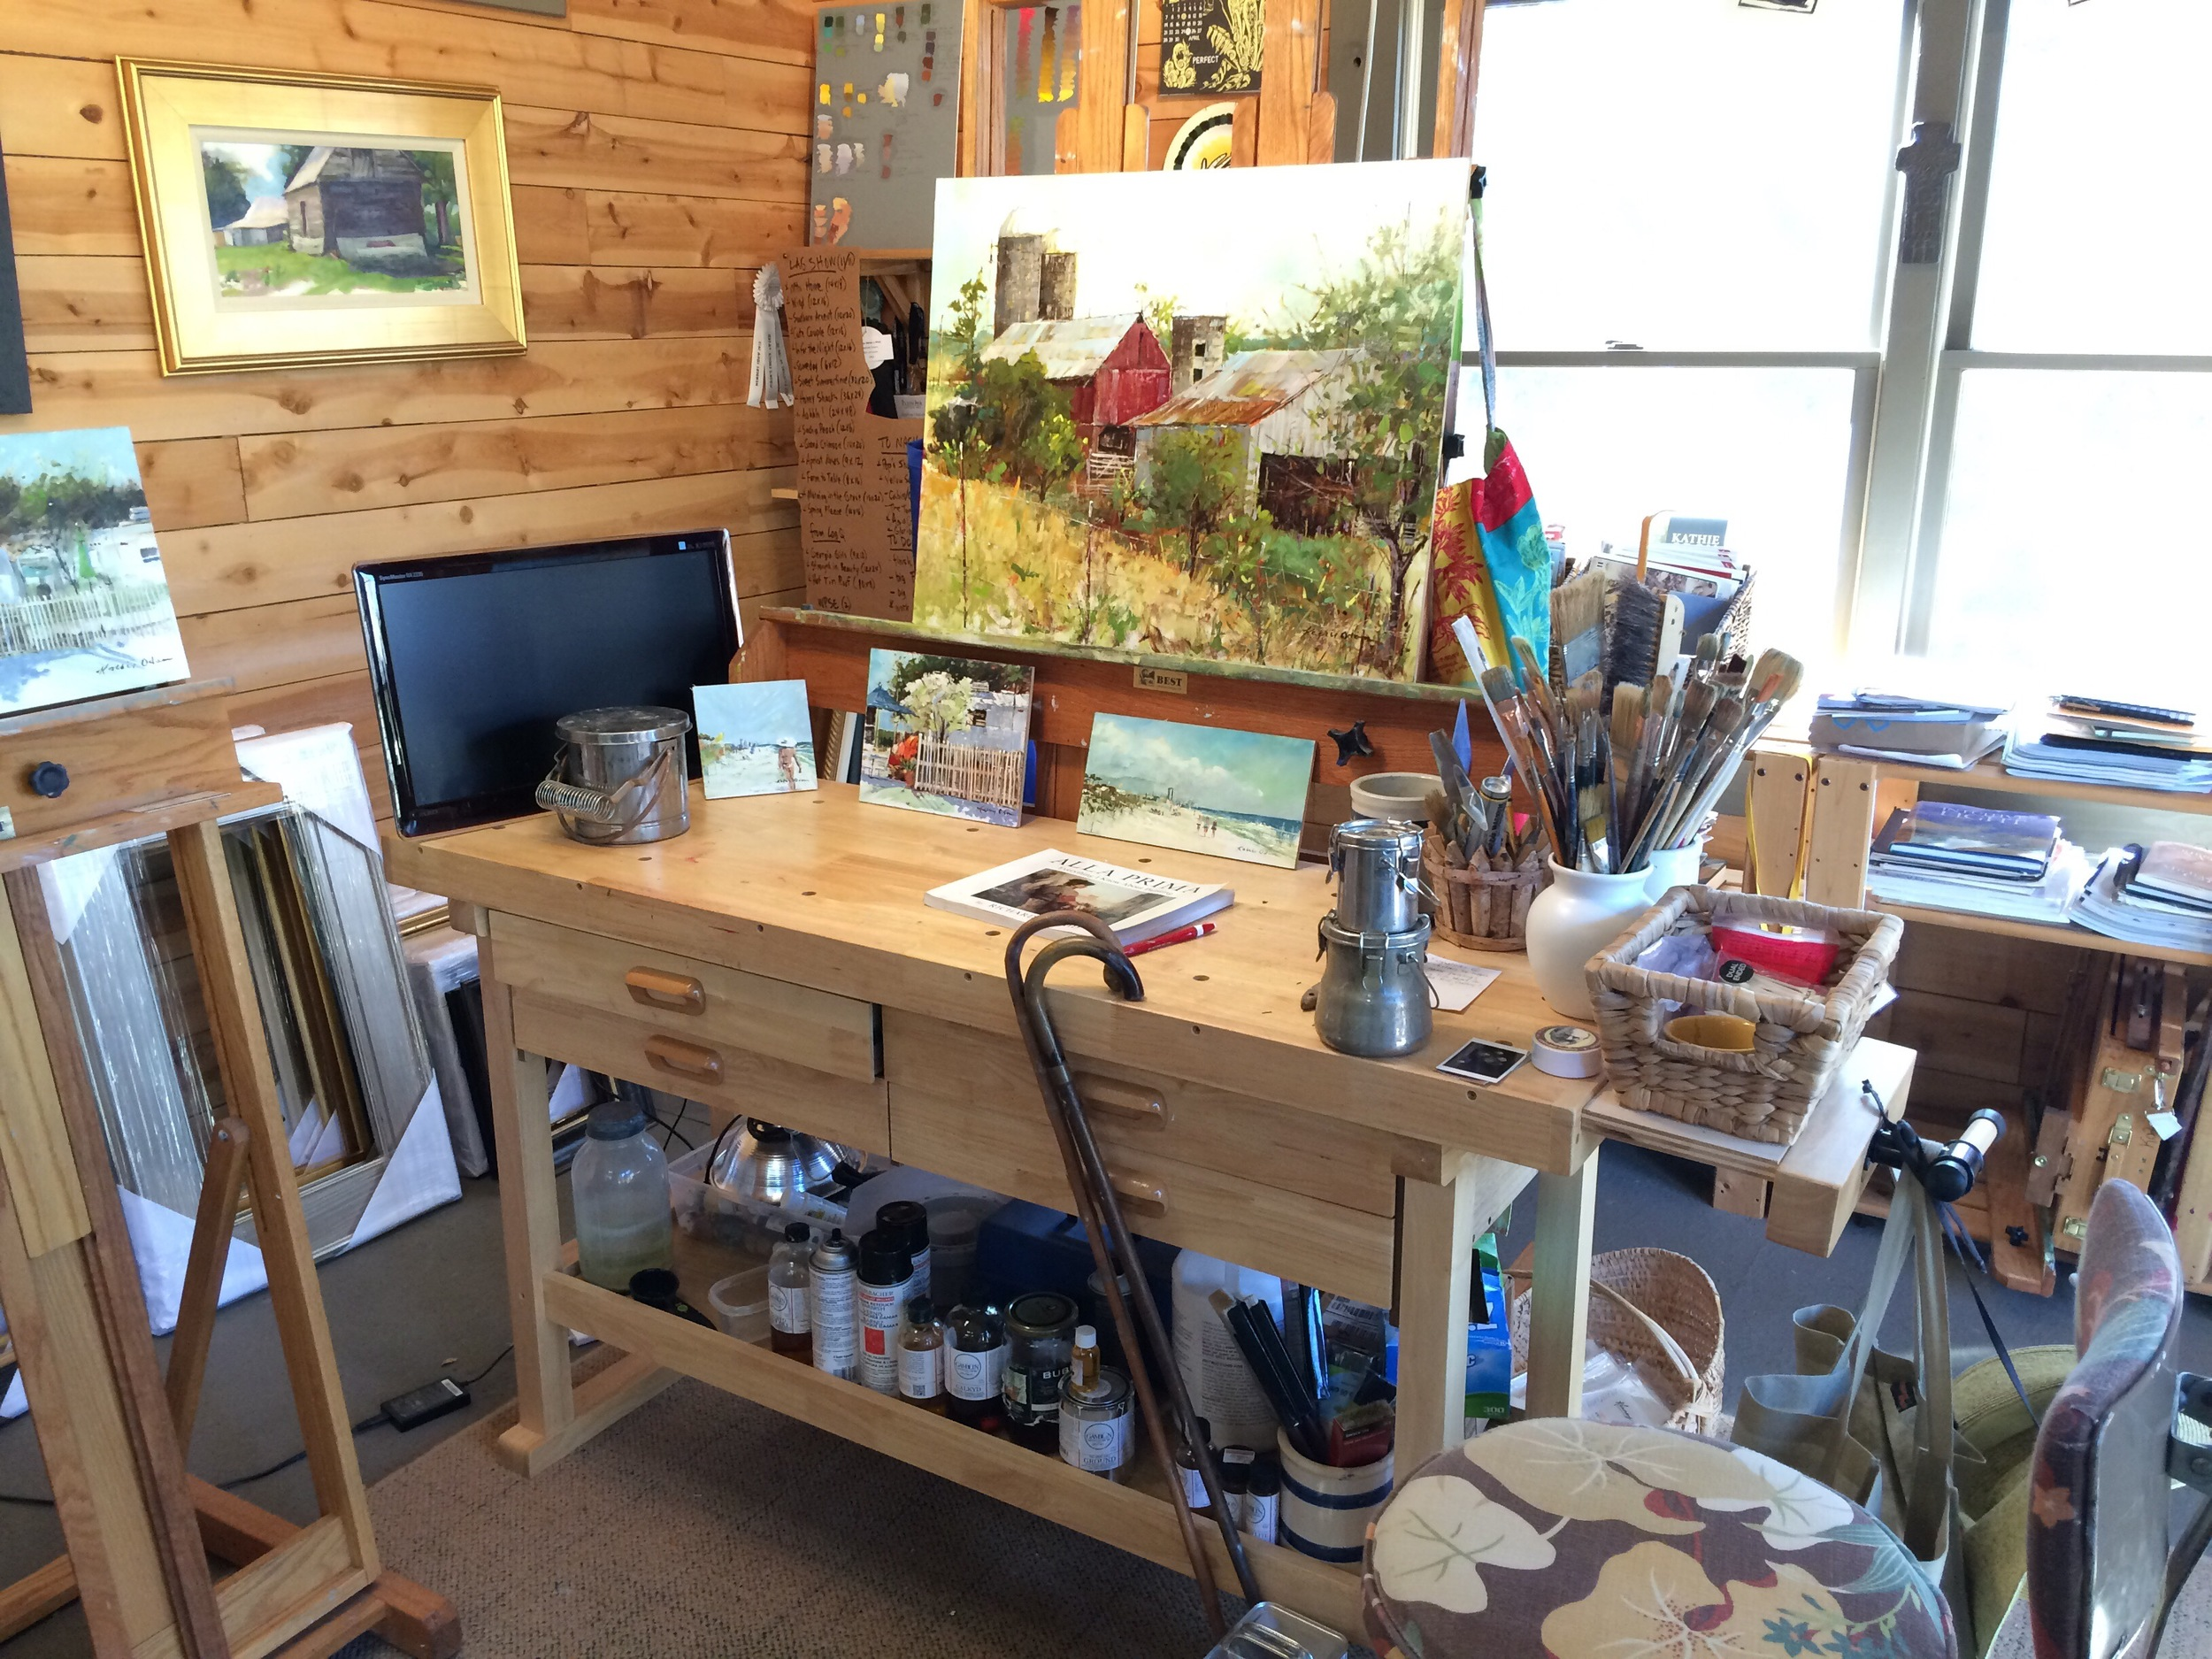 Home/Art Studio Tour at the Odoms